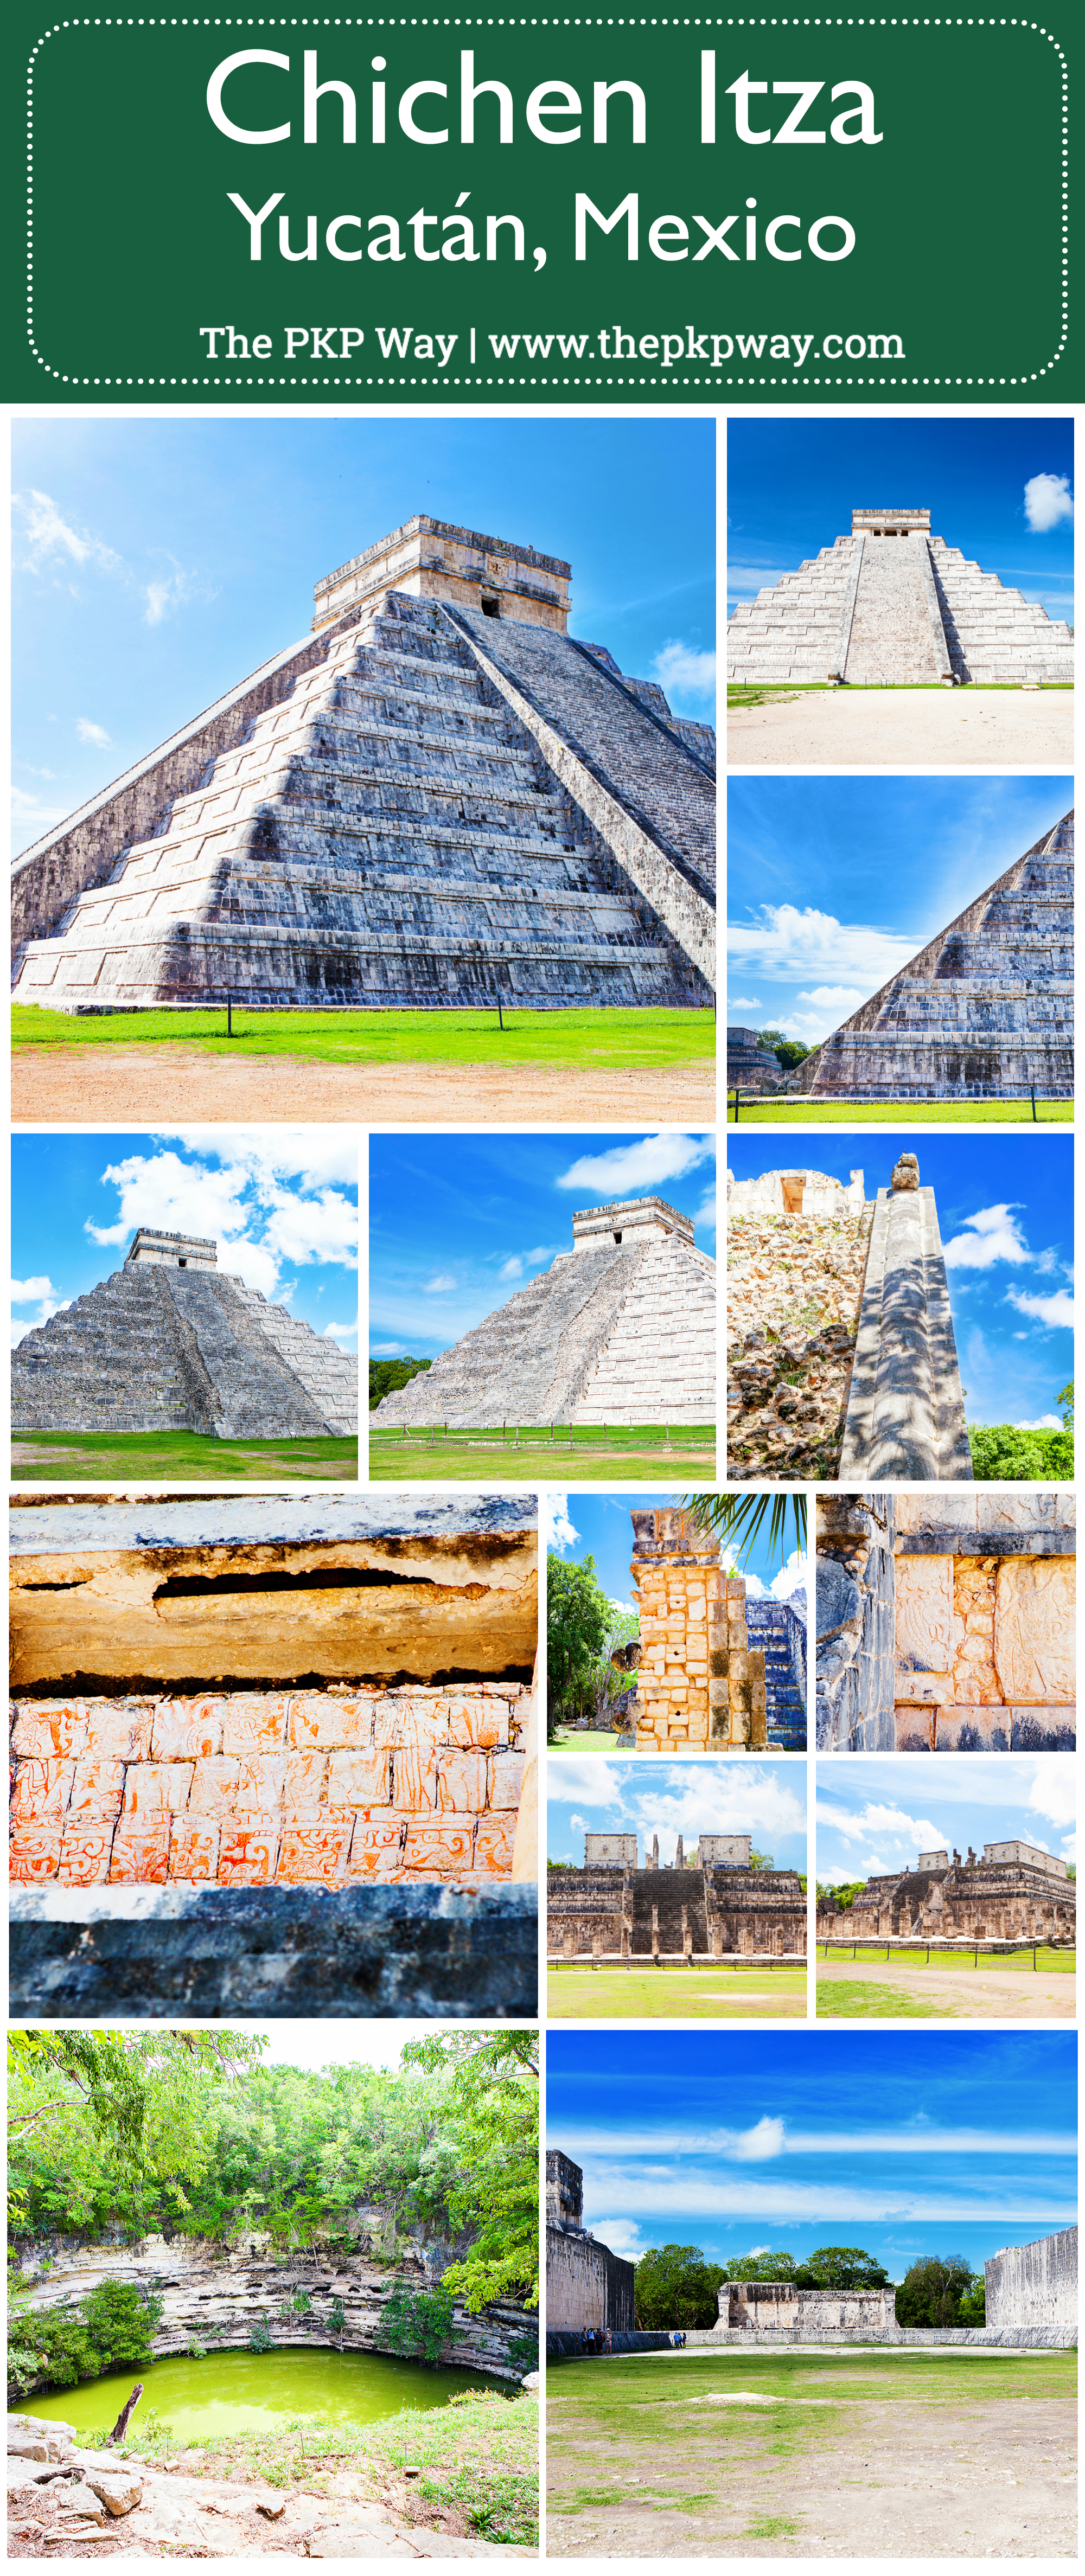 A glimpse into Chichén Itzá (Chichen Itza), an ancient Mayan town in Yucatán, Mexico.